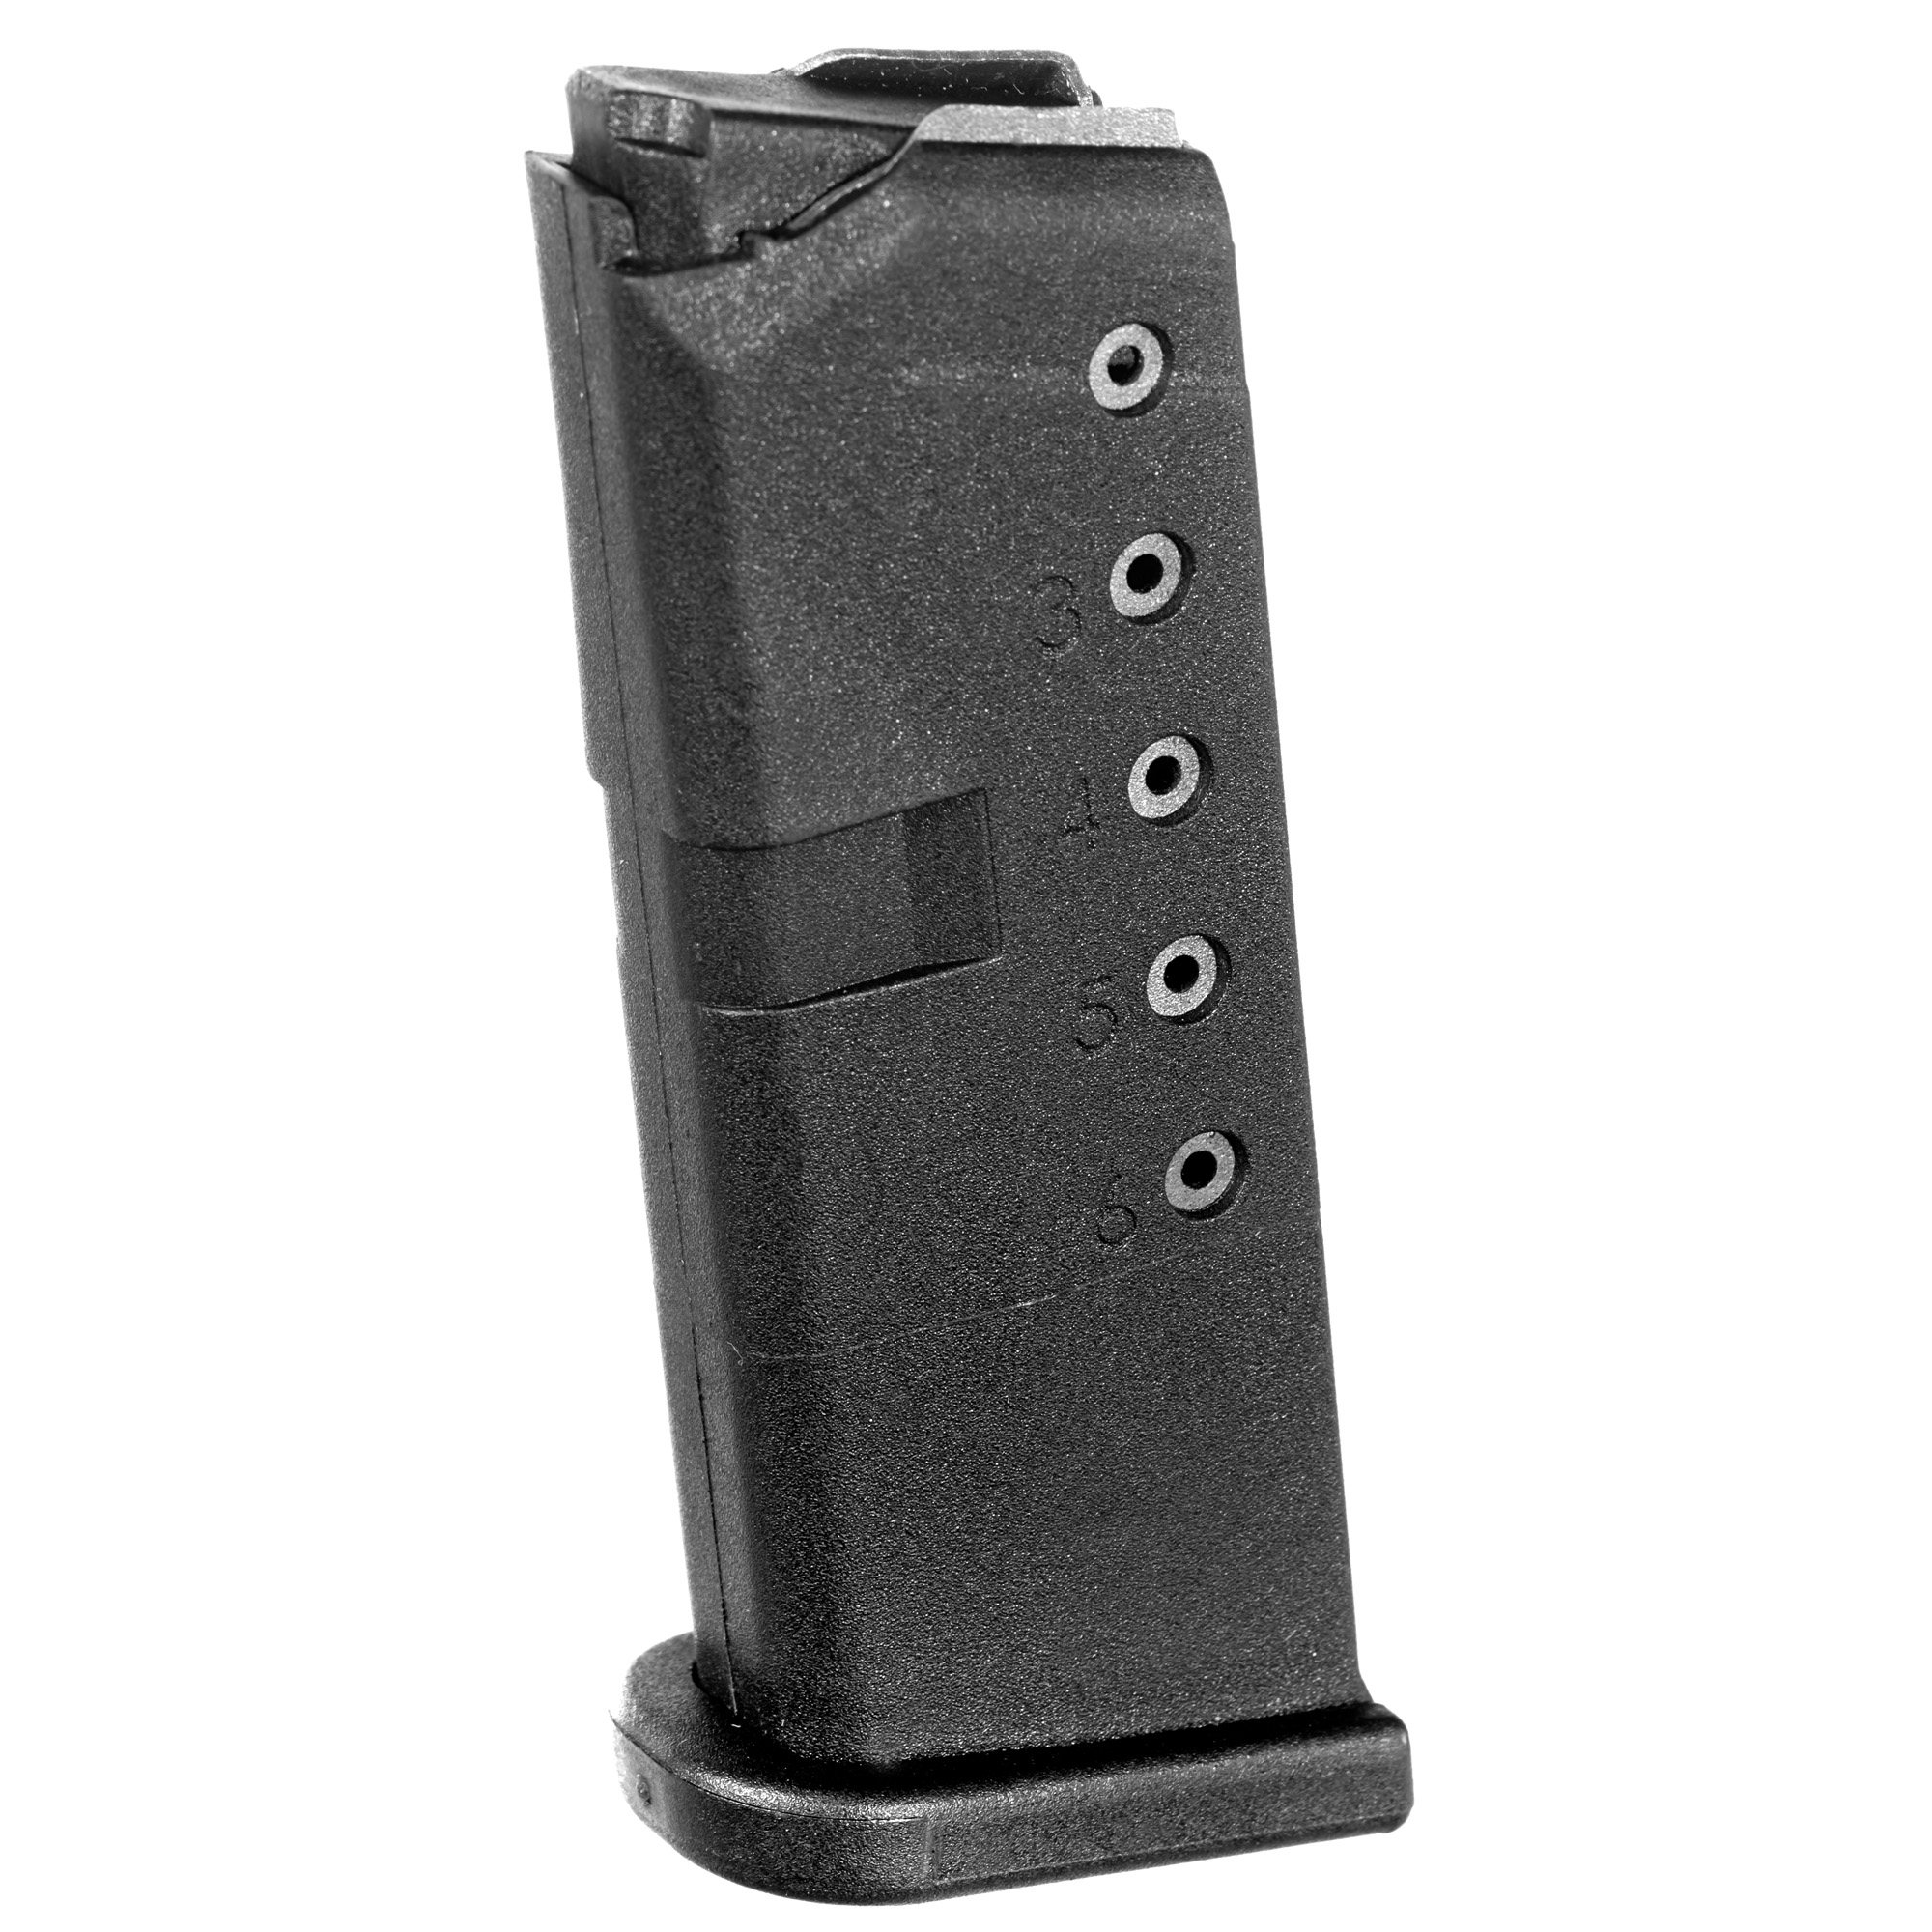 ProMag magazines are made in the USA and backed by a lifetime guarantee against manufacturer's defects. Magazine springs are precision wound using heat-treated chrome silicon wire and each and every step of the assembly process is checked and double checked in order to maintain the same consistent level of quality.